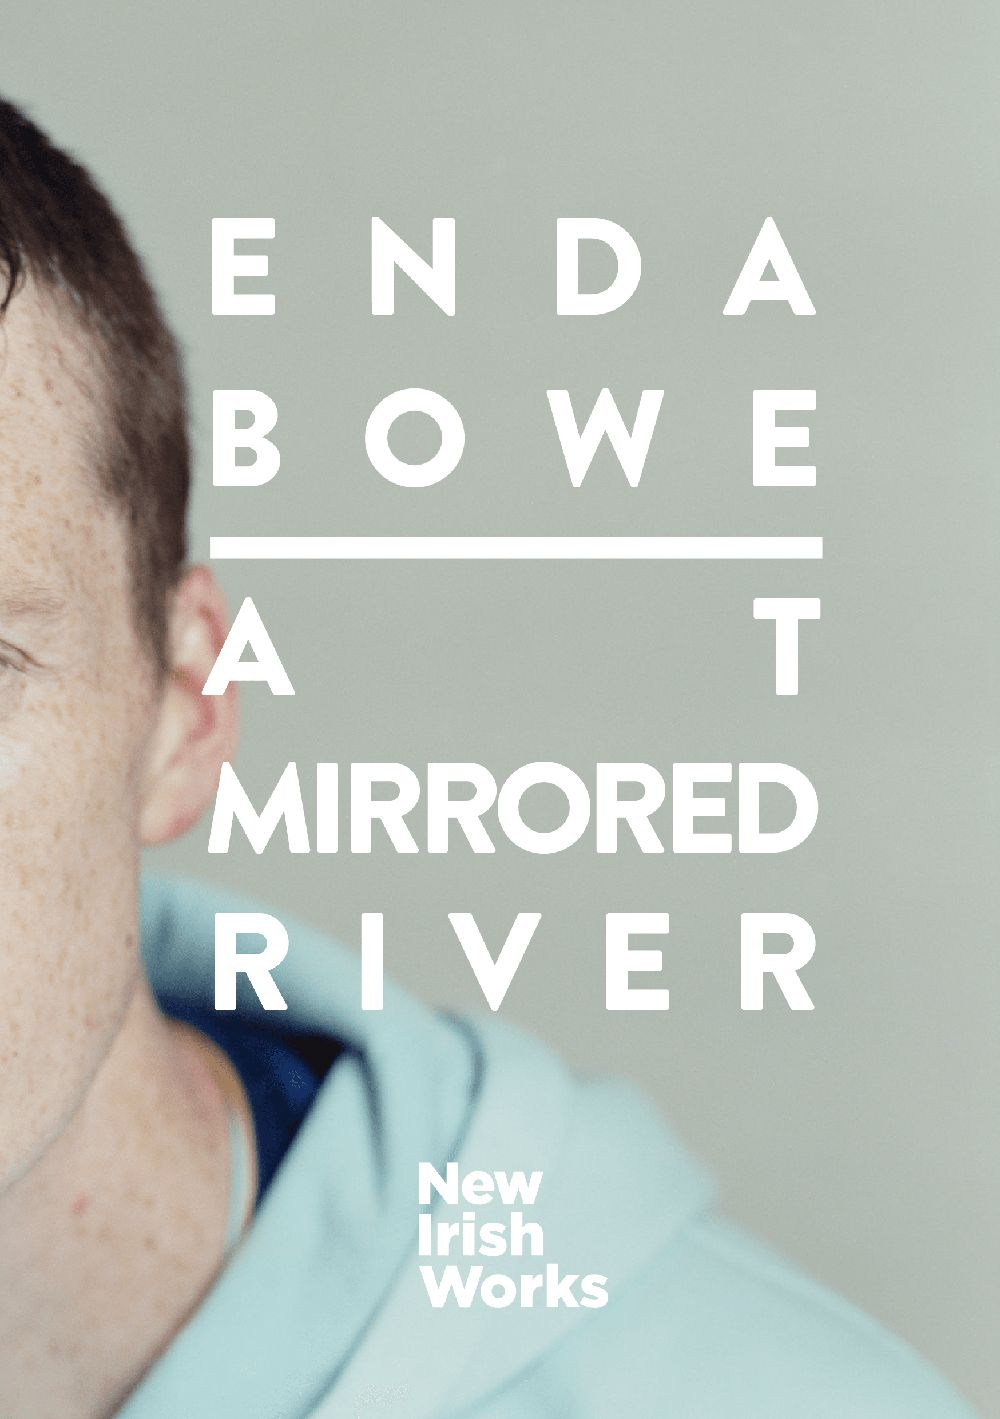 At Mirrored River, Enda Bowe – NEW IRISH WORKS